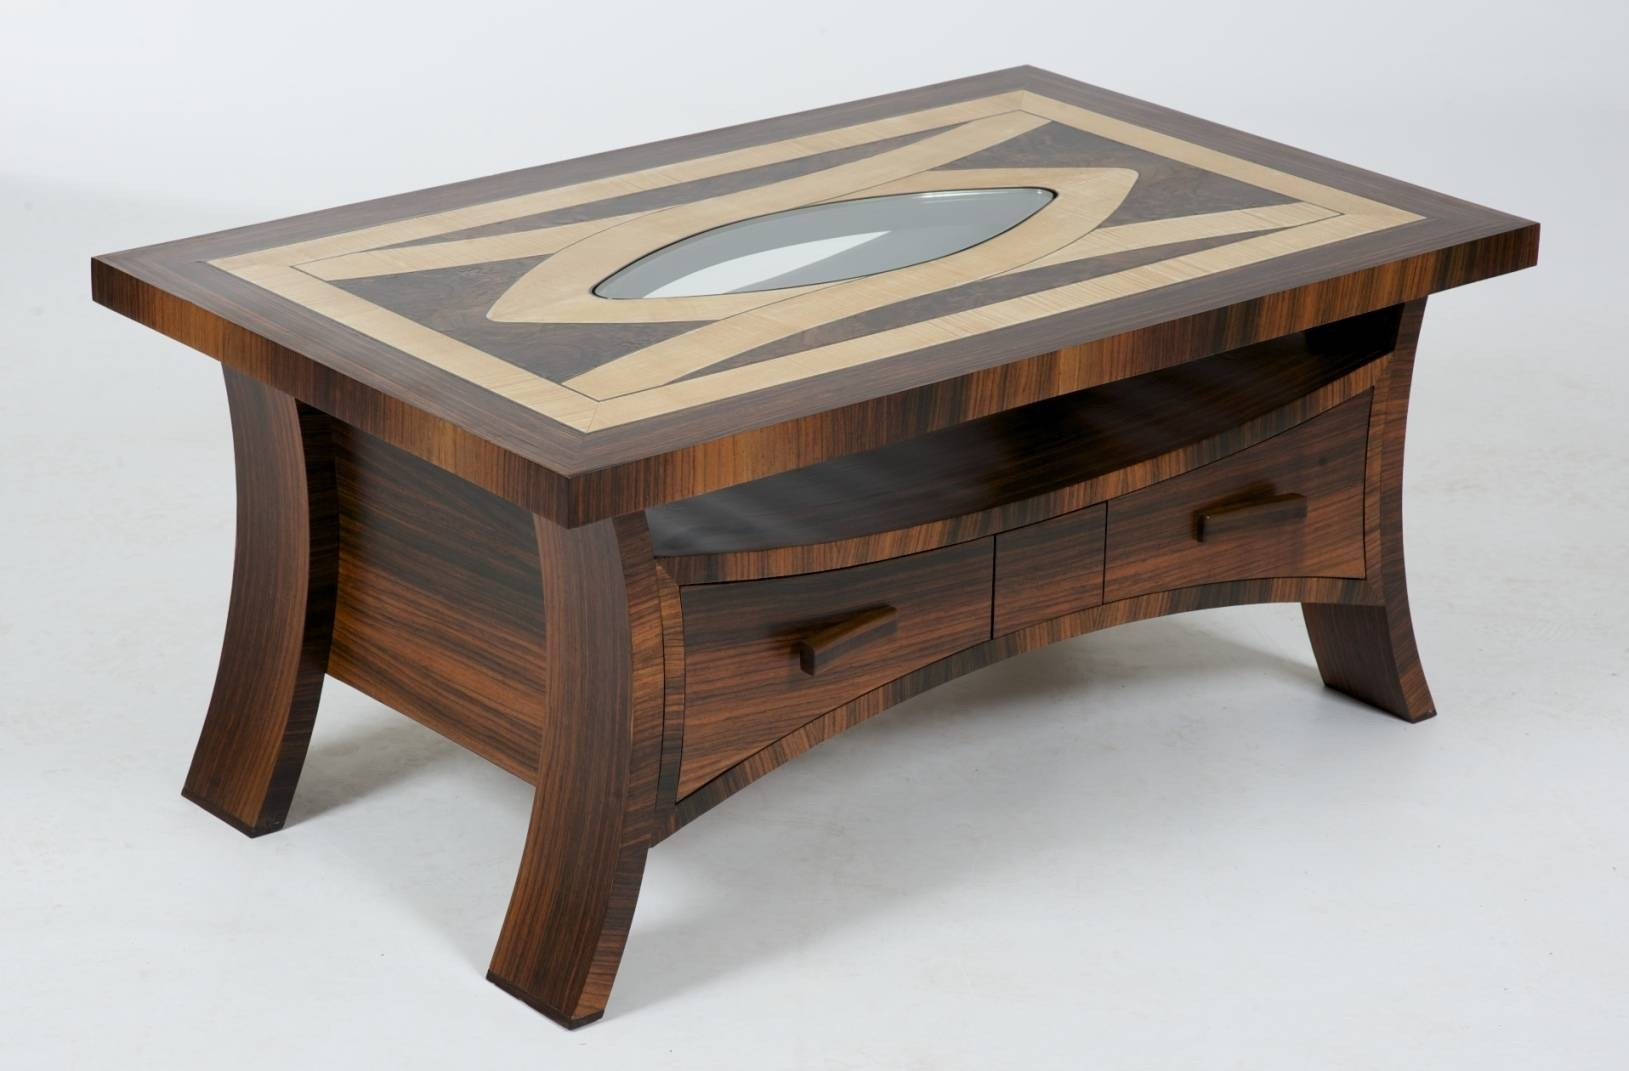 Coffee Table: Mesmerizing Unique Coffee Table Unique Coffee Table inside Unique Coffee Tables (Image 5 of 15)